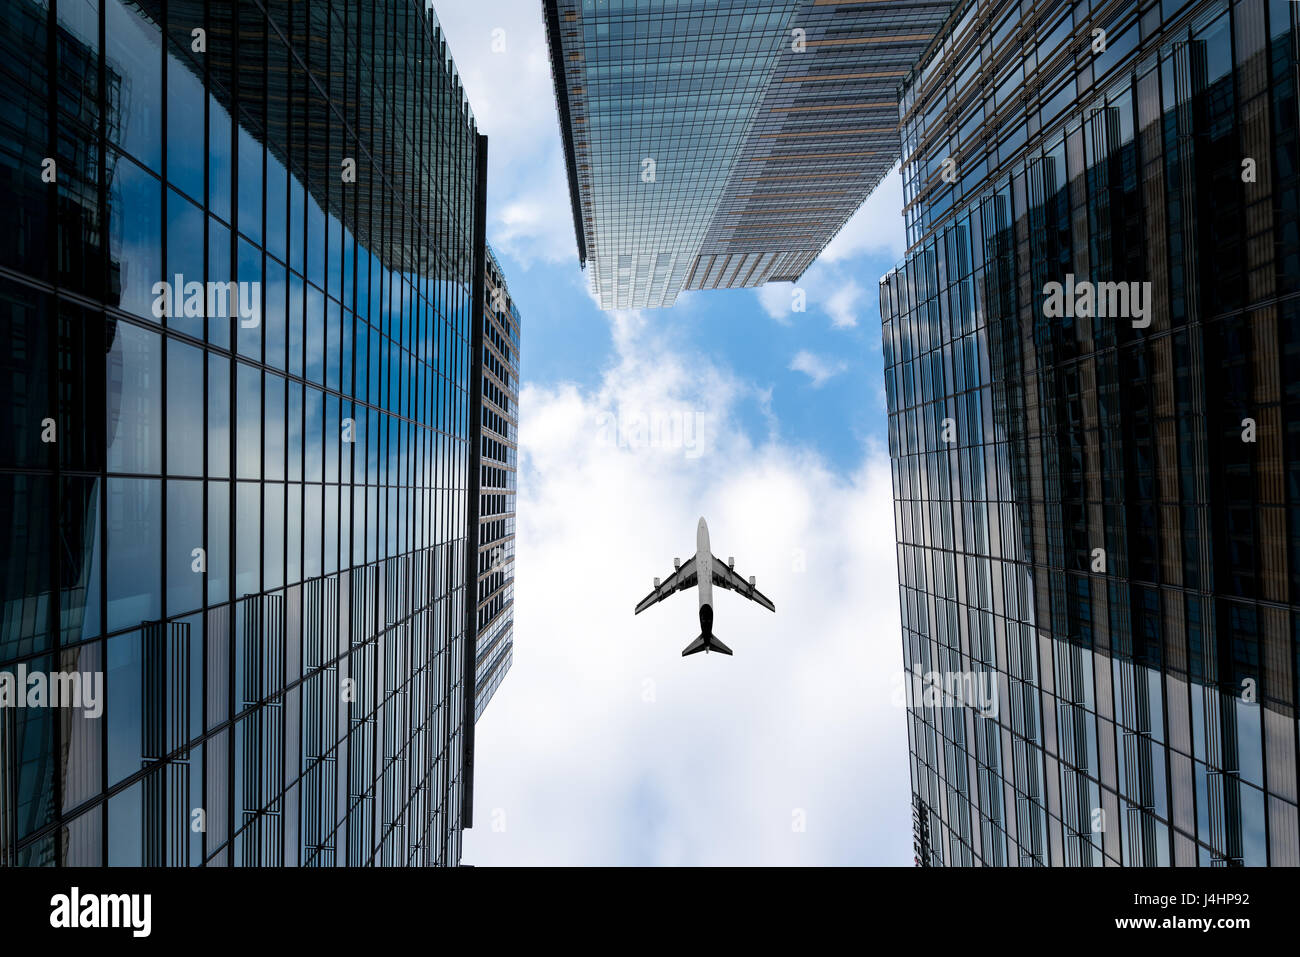 Tokyo skyscrapers buildings and a plane flying overhead at in Tokyo Shinjuku downtown and business district in morning Stock Photo